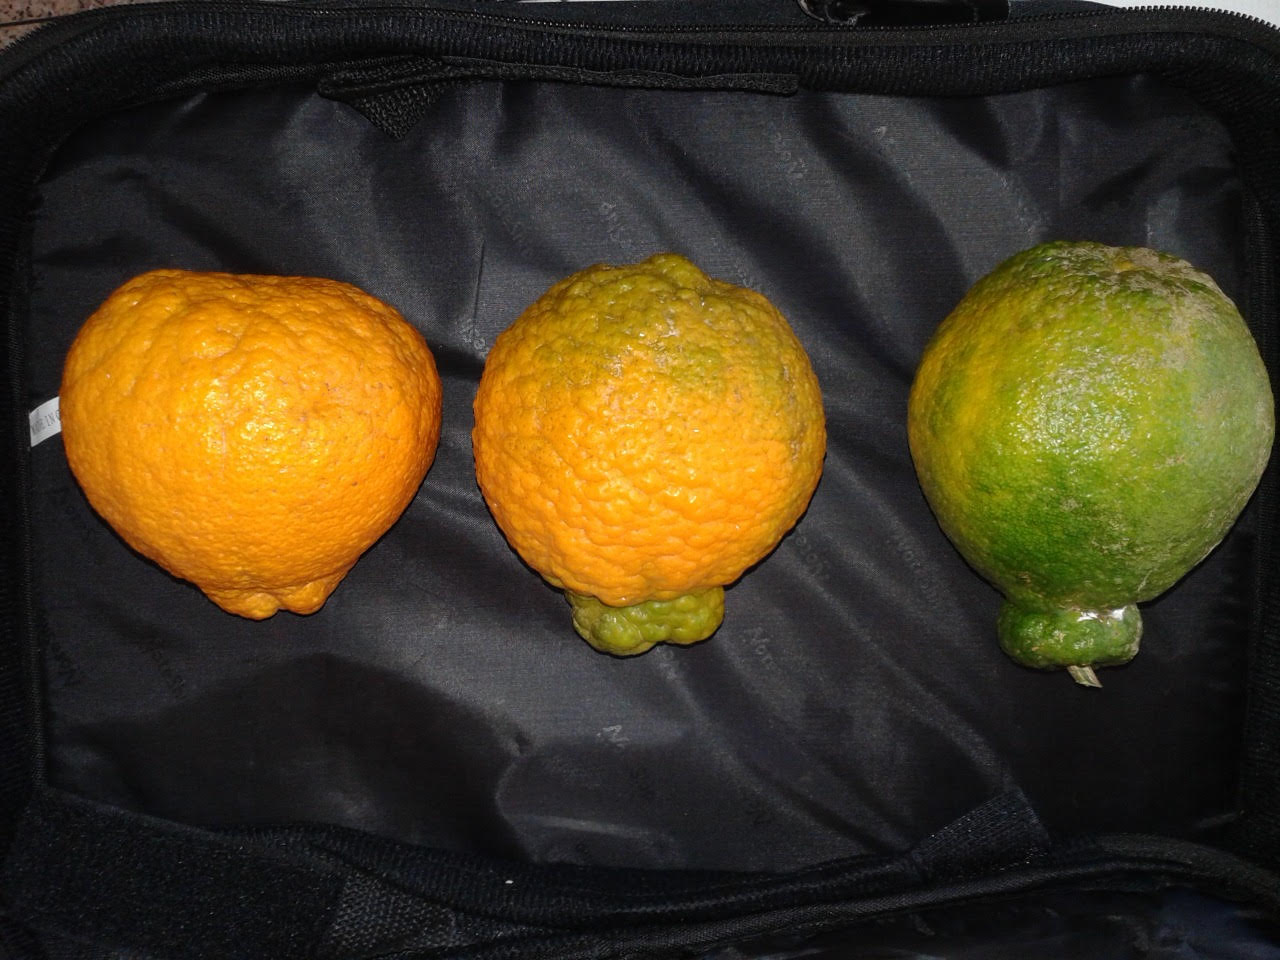 'Dekopon' fruits in three ripening stages Photo: Siqueira, A.P.S.